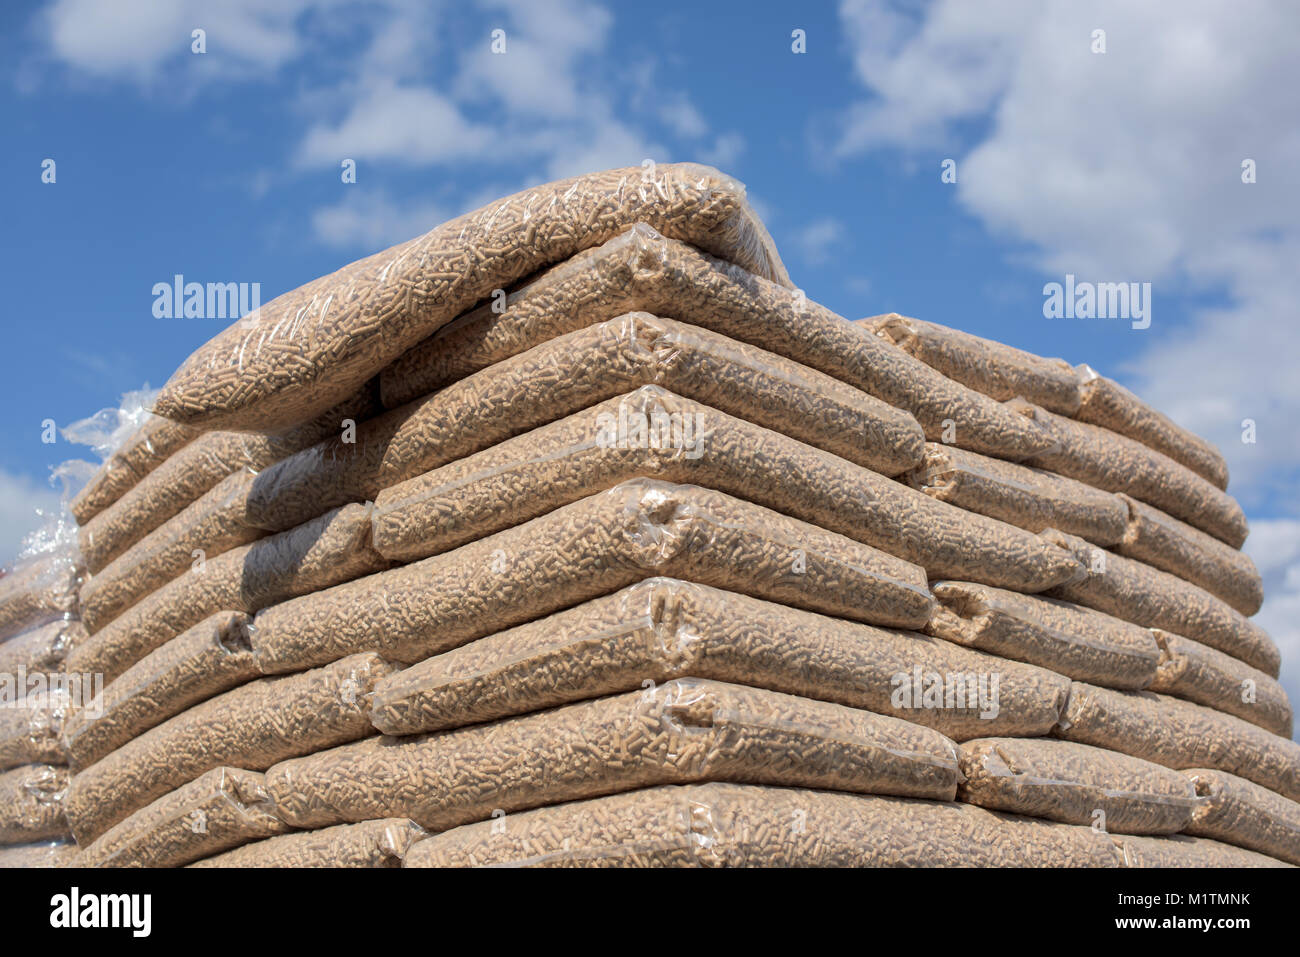 Heap of bags with wooden pellet biomass - Stock Image